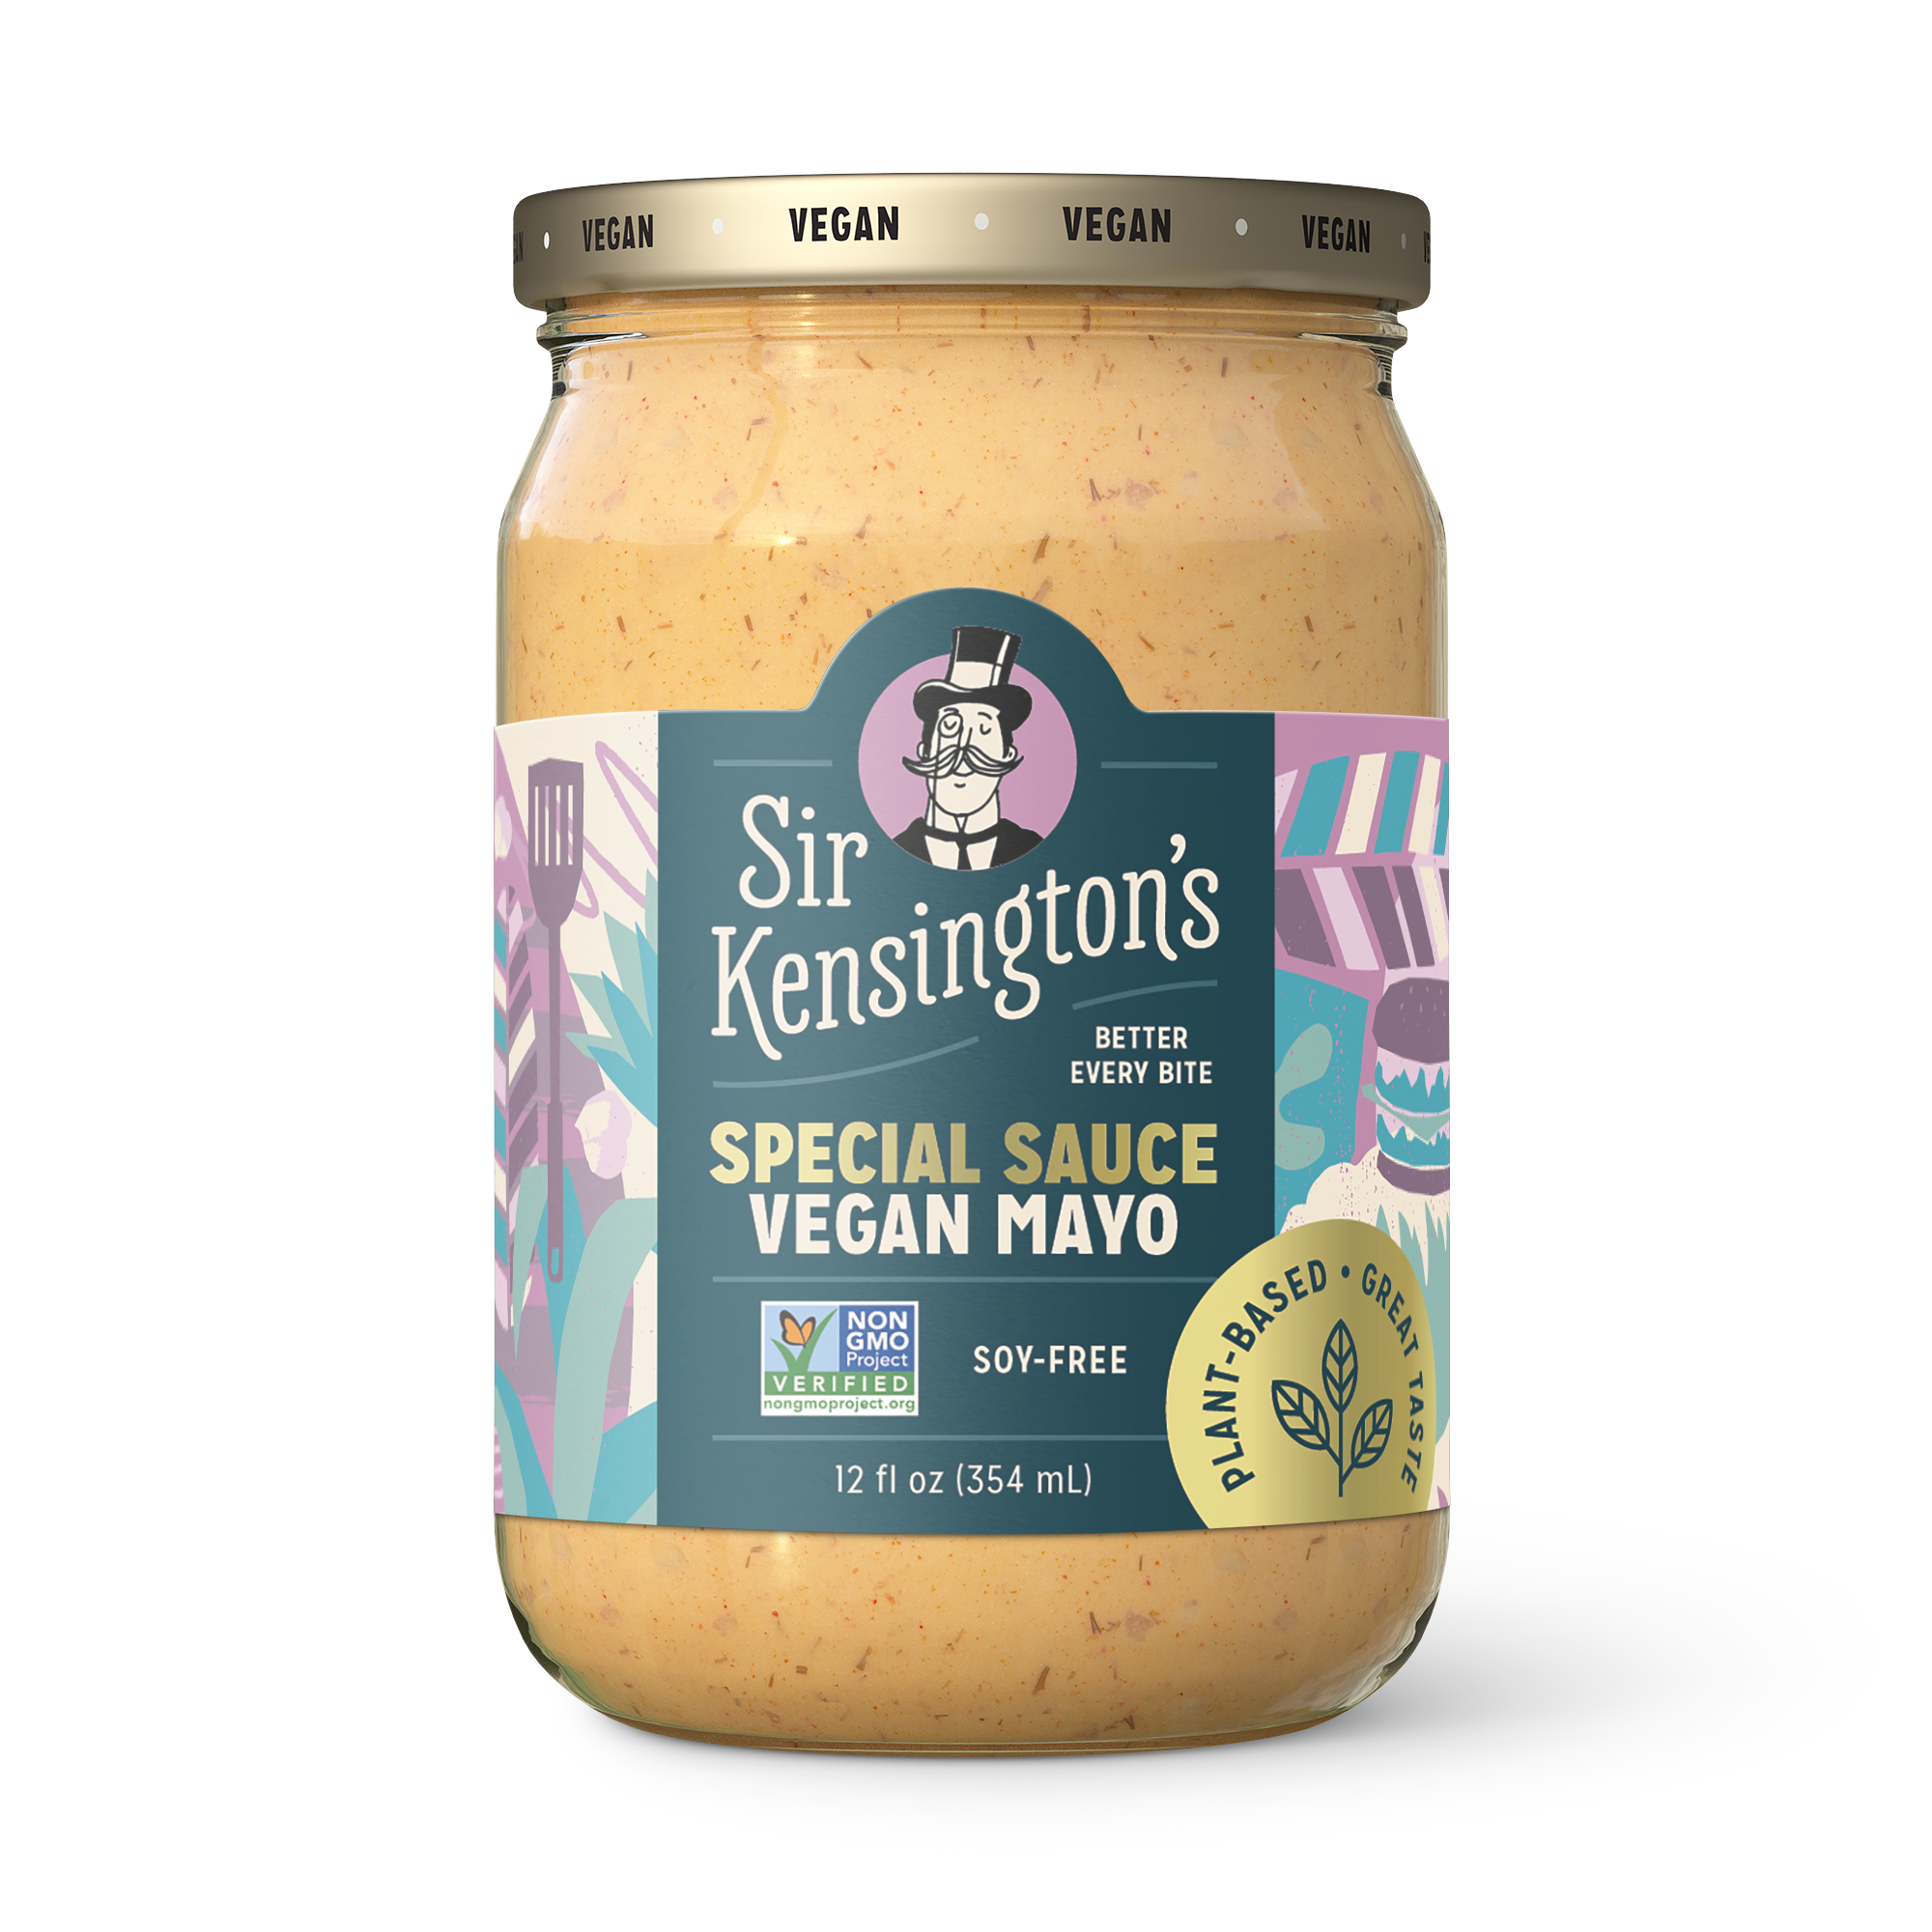 Image of Special Sauce Vegan Mayo